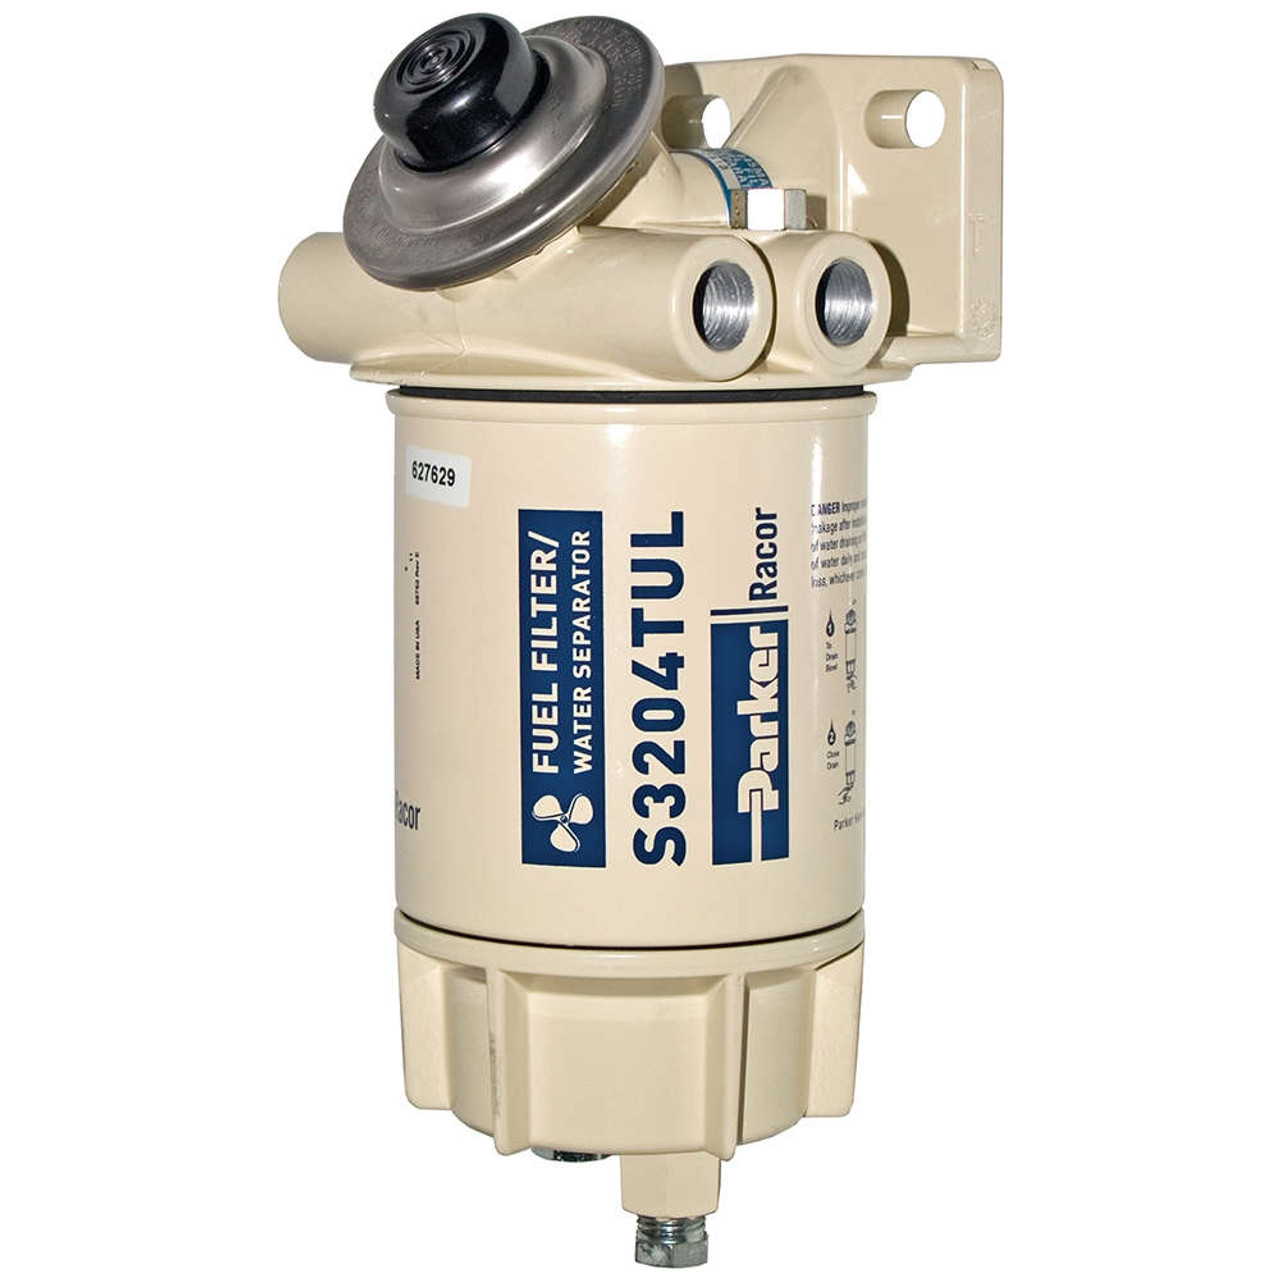 hight resolution of racor aquabloc marine 3 8 in 45 gph spin on diesel fuel filter water separator assembly 6 qty john m ellsworth co inc